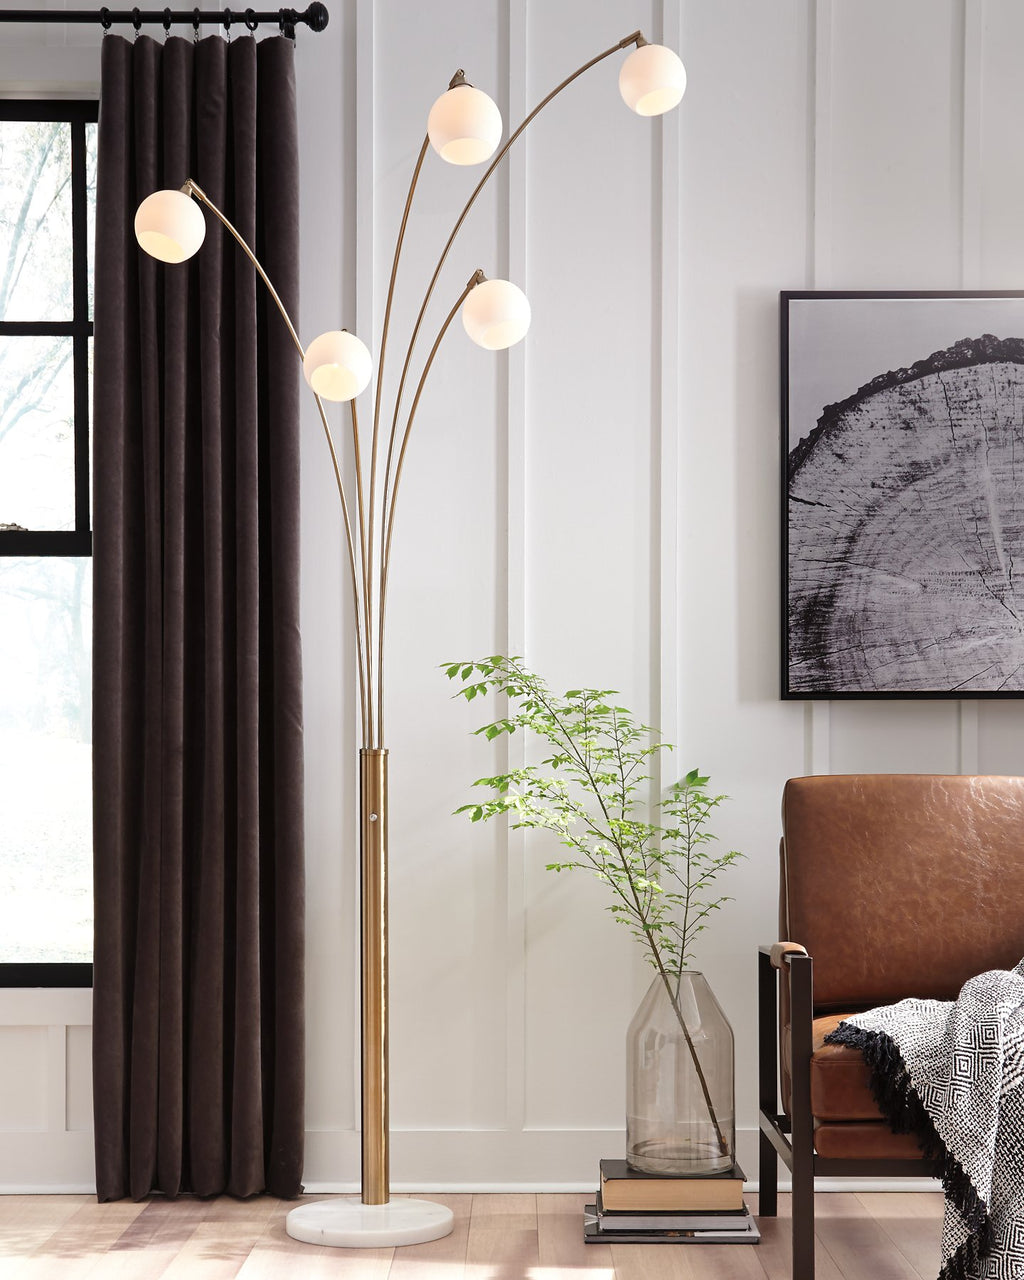 Taliya Signature Design by Ashley Floor Lamp image